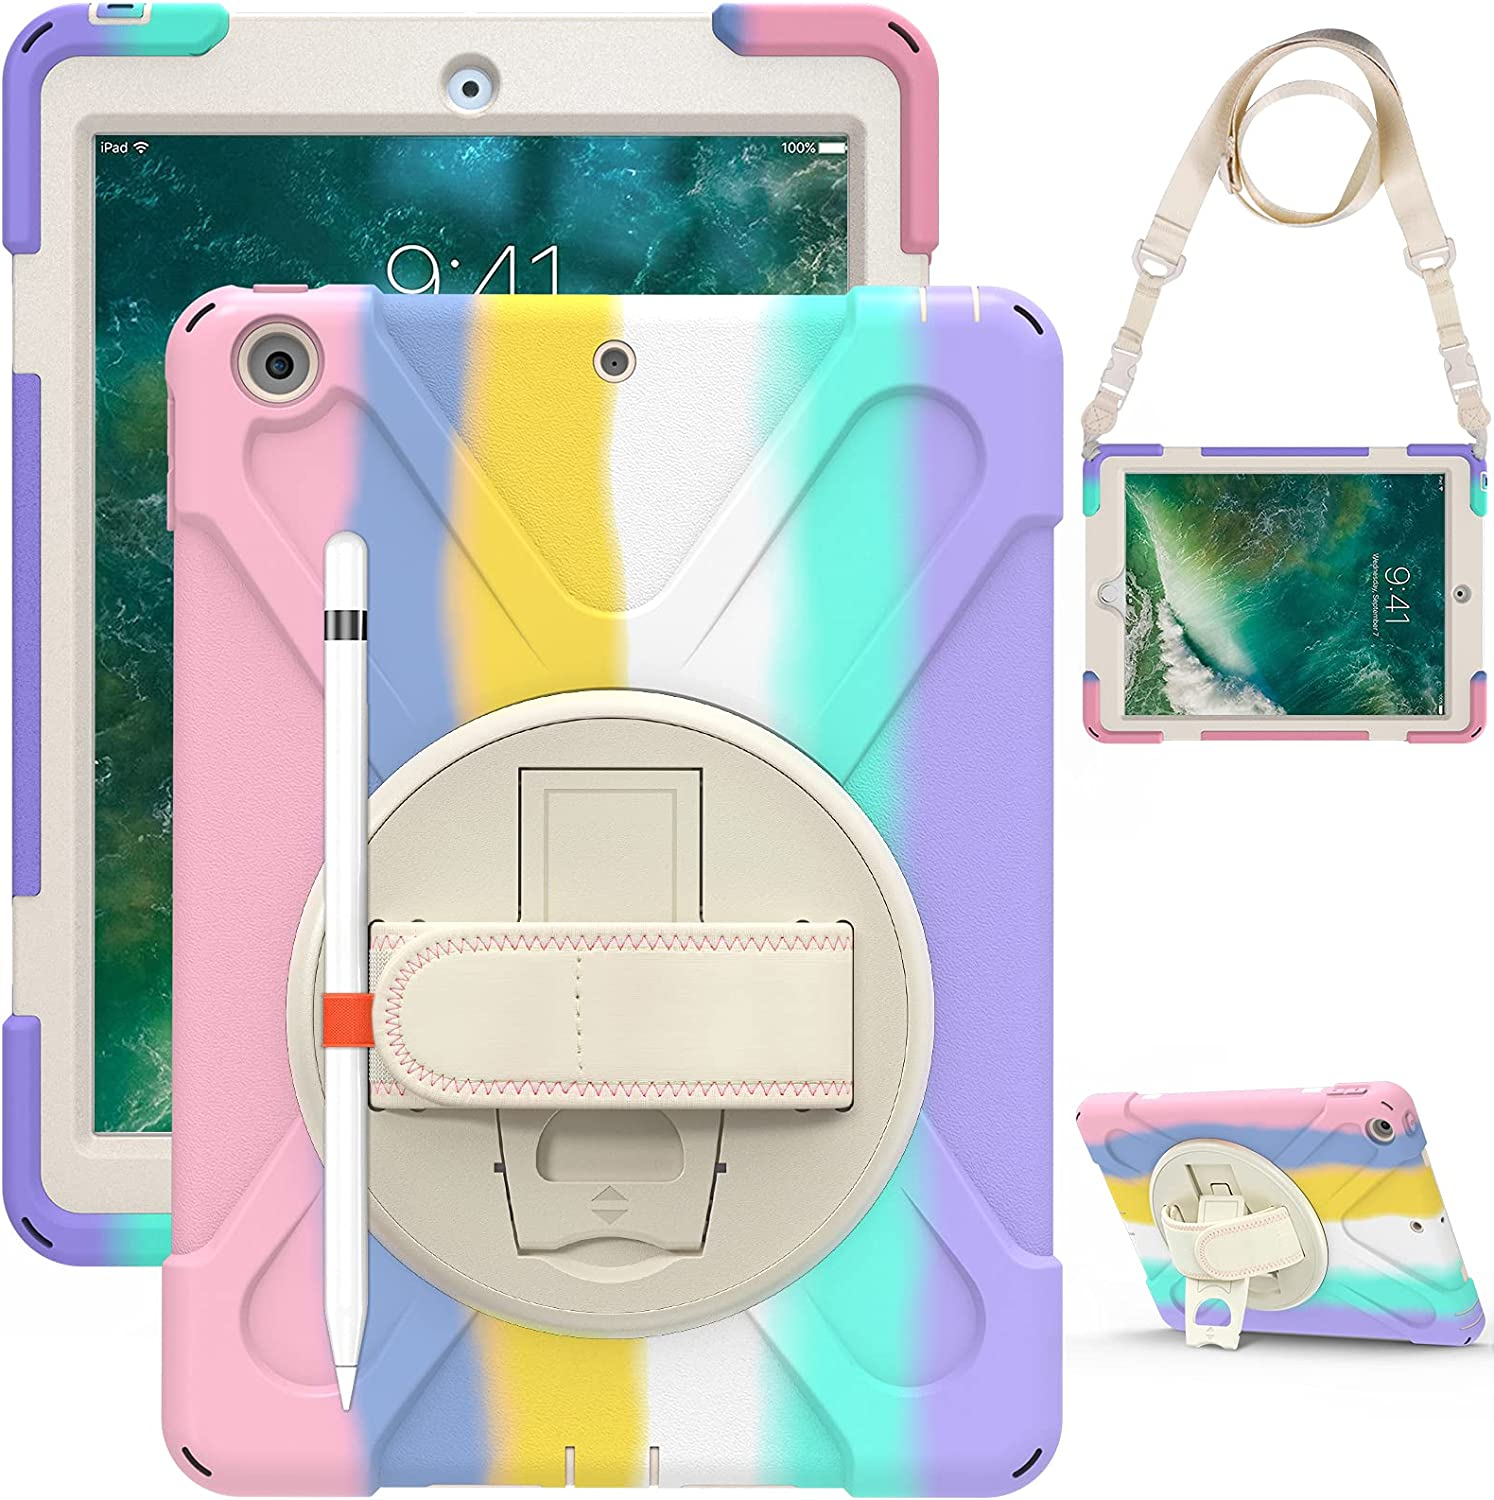 Changjia iPad Pro Seattle Mall Spring new work one after another 11 Air 4 Shockproof 10.9 Duty Case Heavy